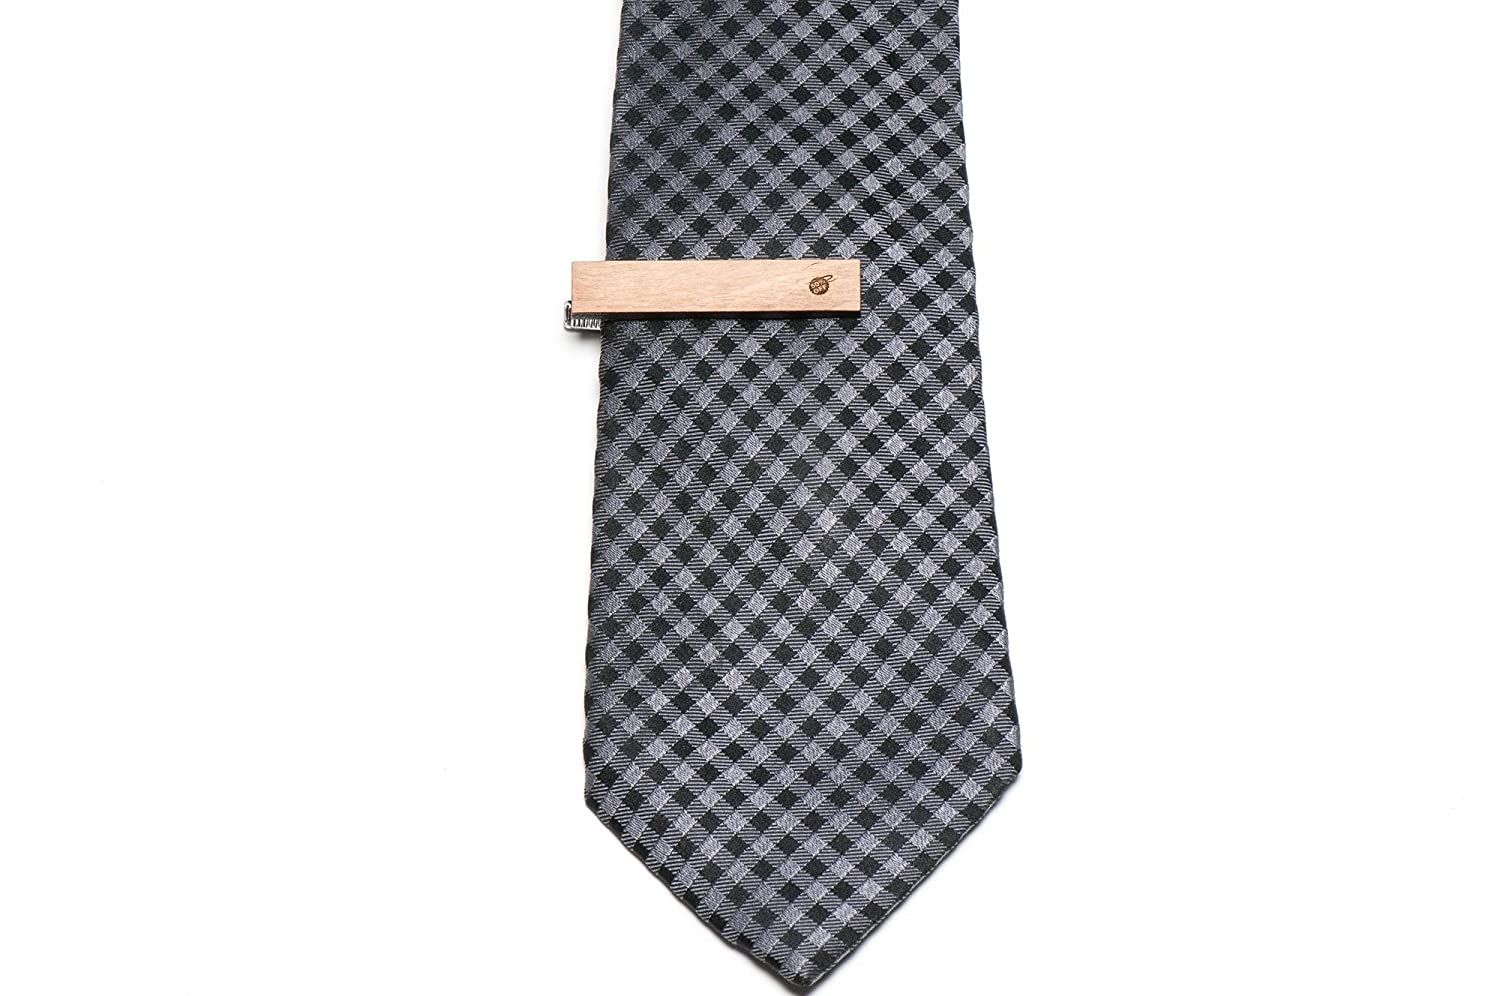 Wooden Accessories Company Wooden Tie Clips with Laser Engraved Fifty Percent Off Design Cherry Wood Tie Bar Engraved in The USA